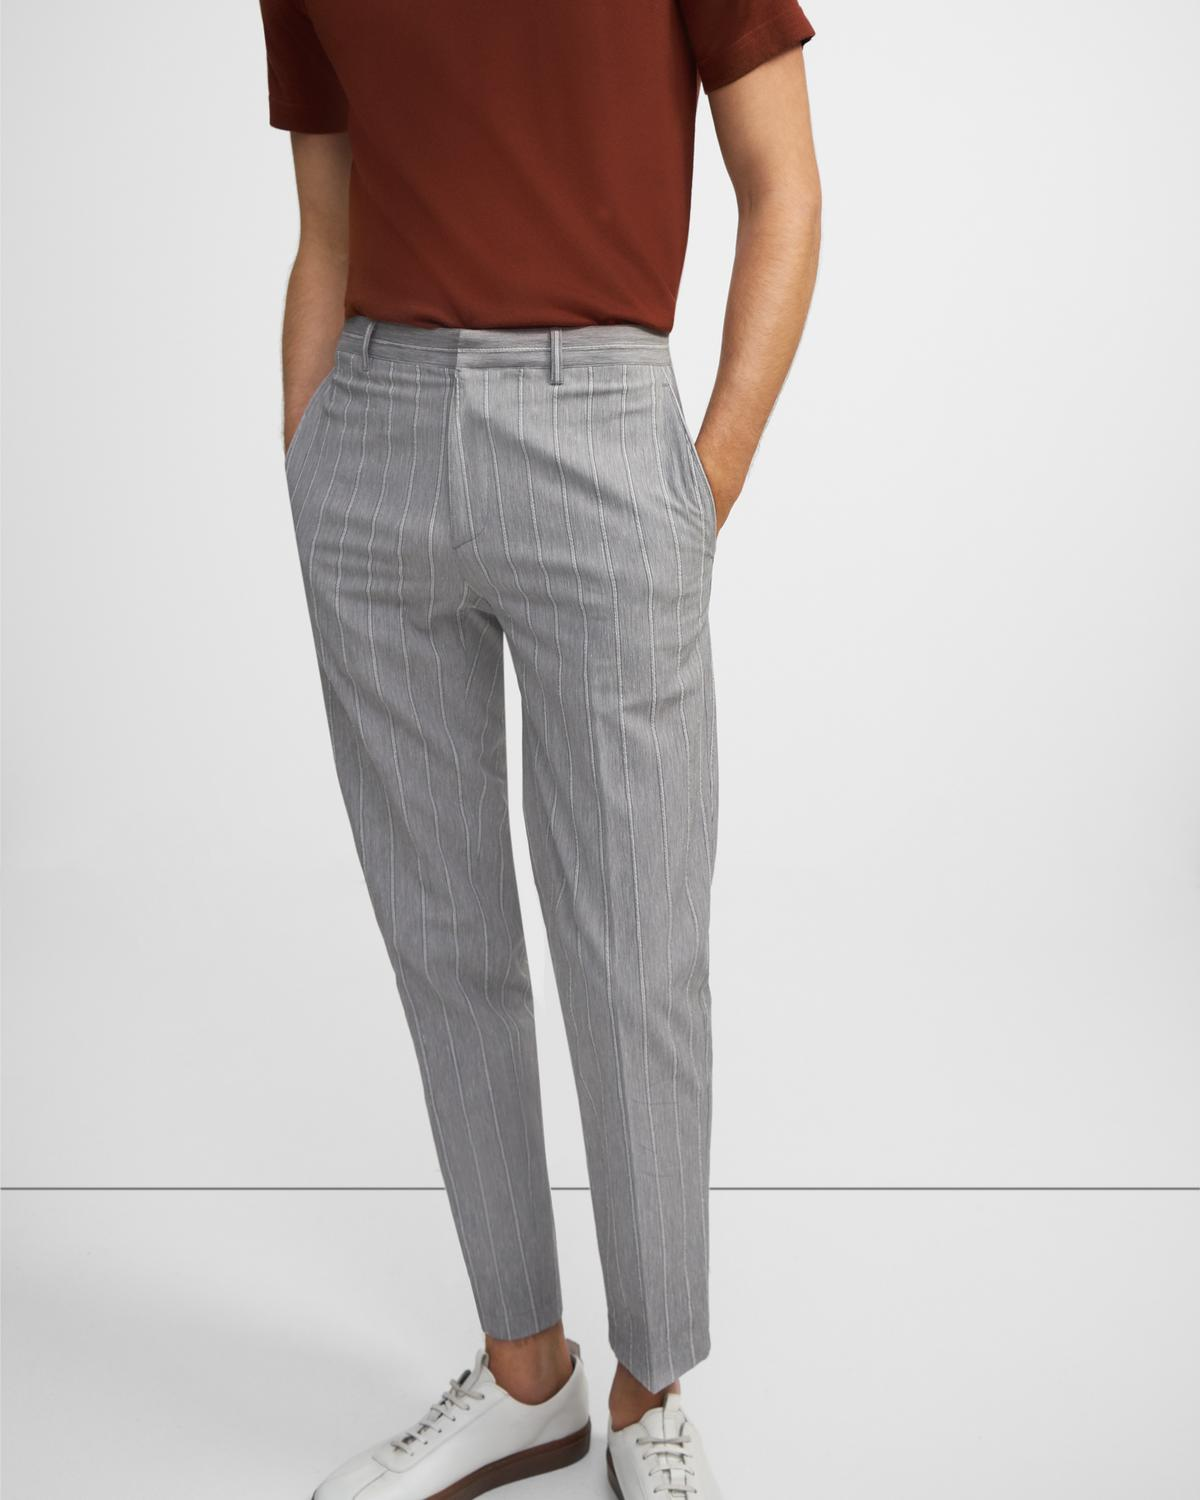 Curtis Pant in Seersucker Stretch Cotton